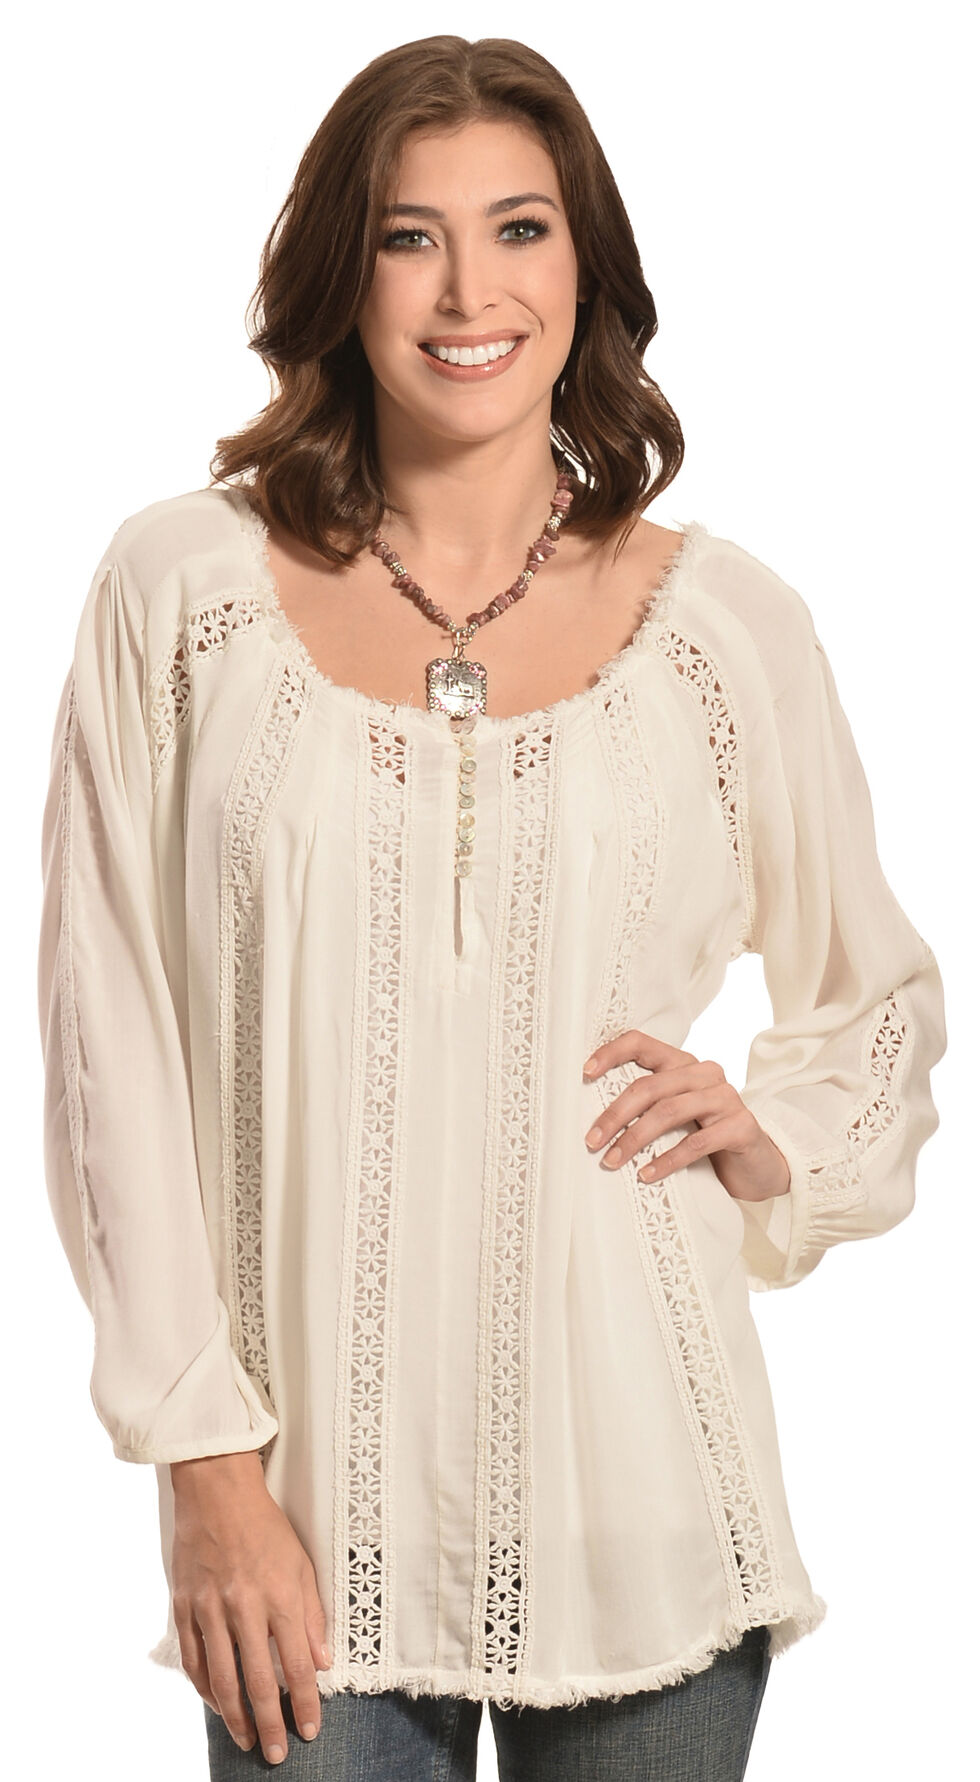 R Cinco Ranch Women's Layla Peasant Top, White, hi-res